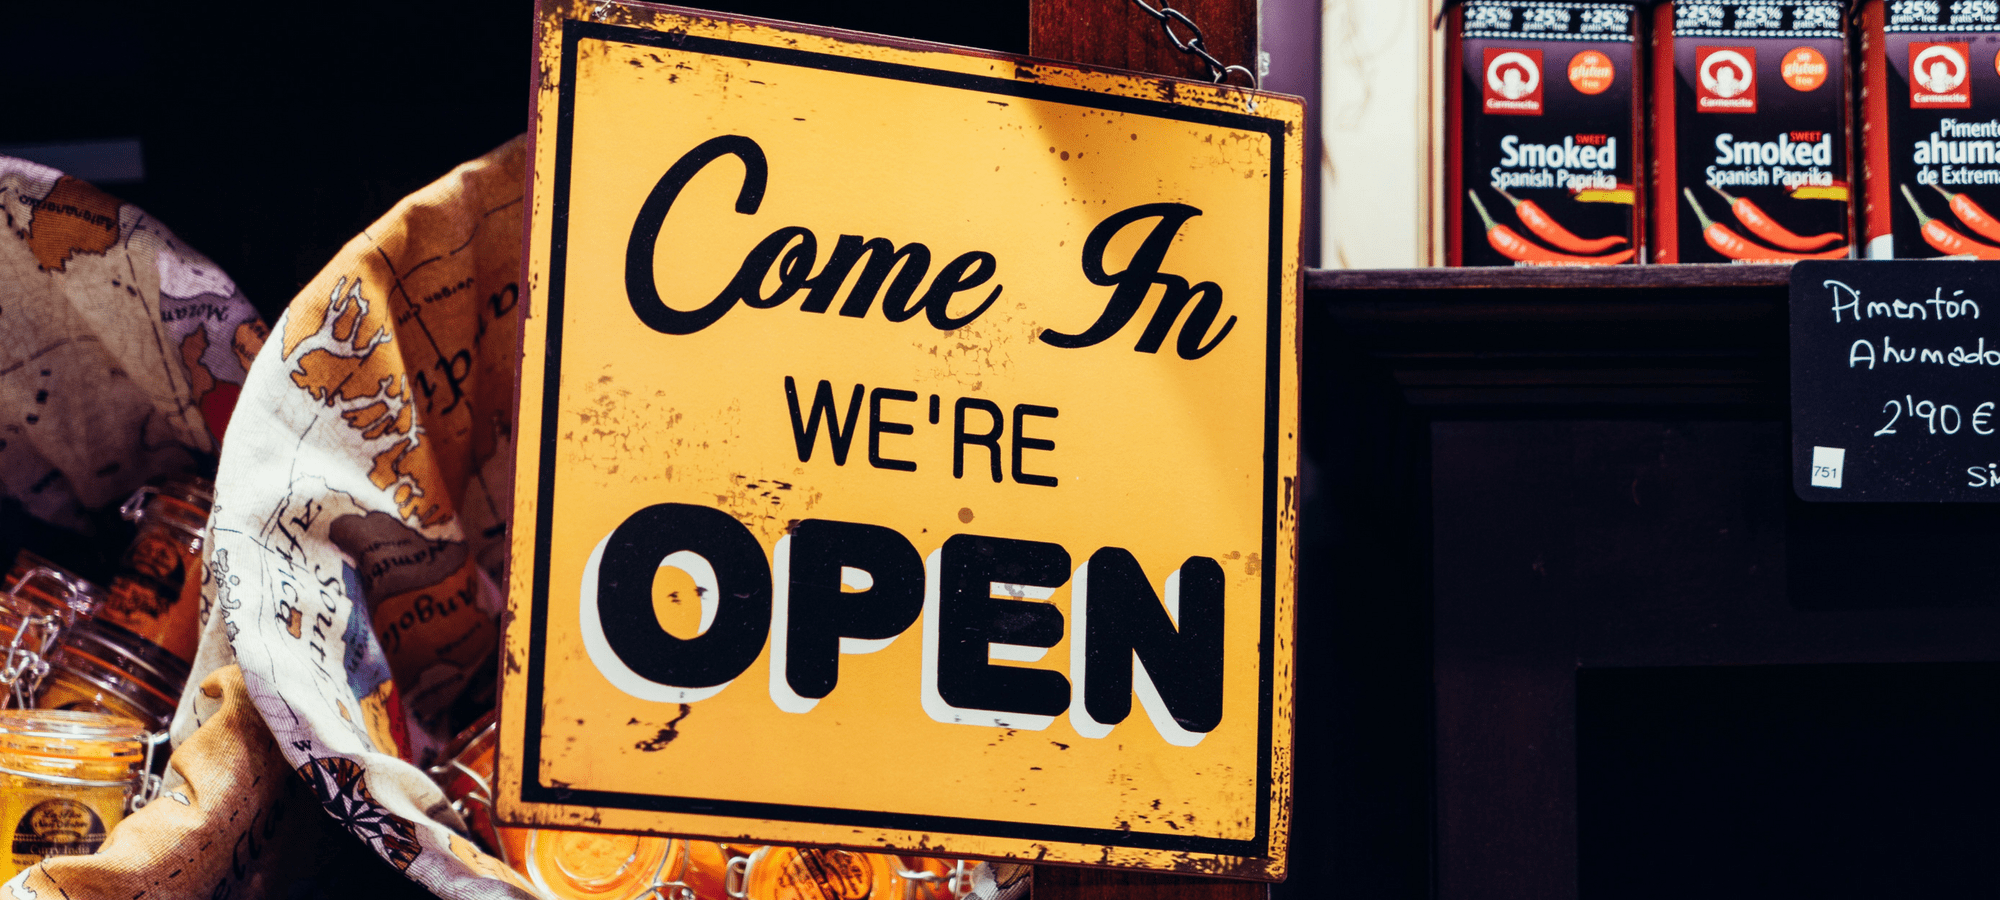 We're open, yellow shop sign